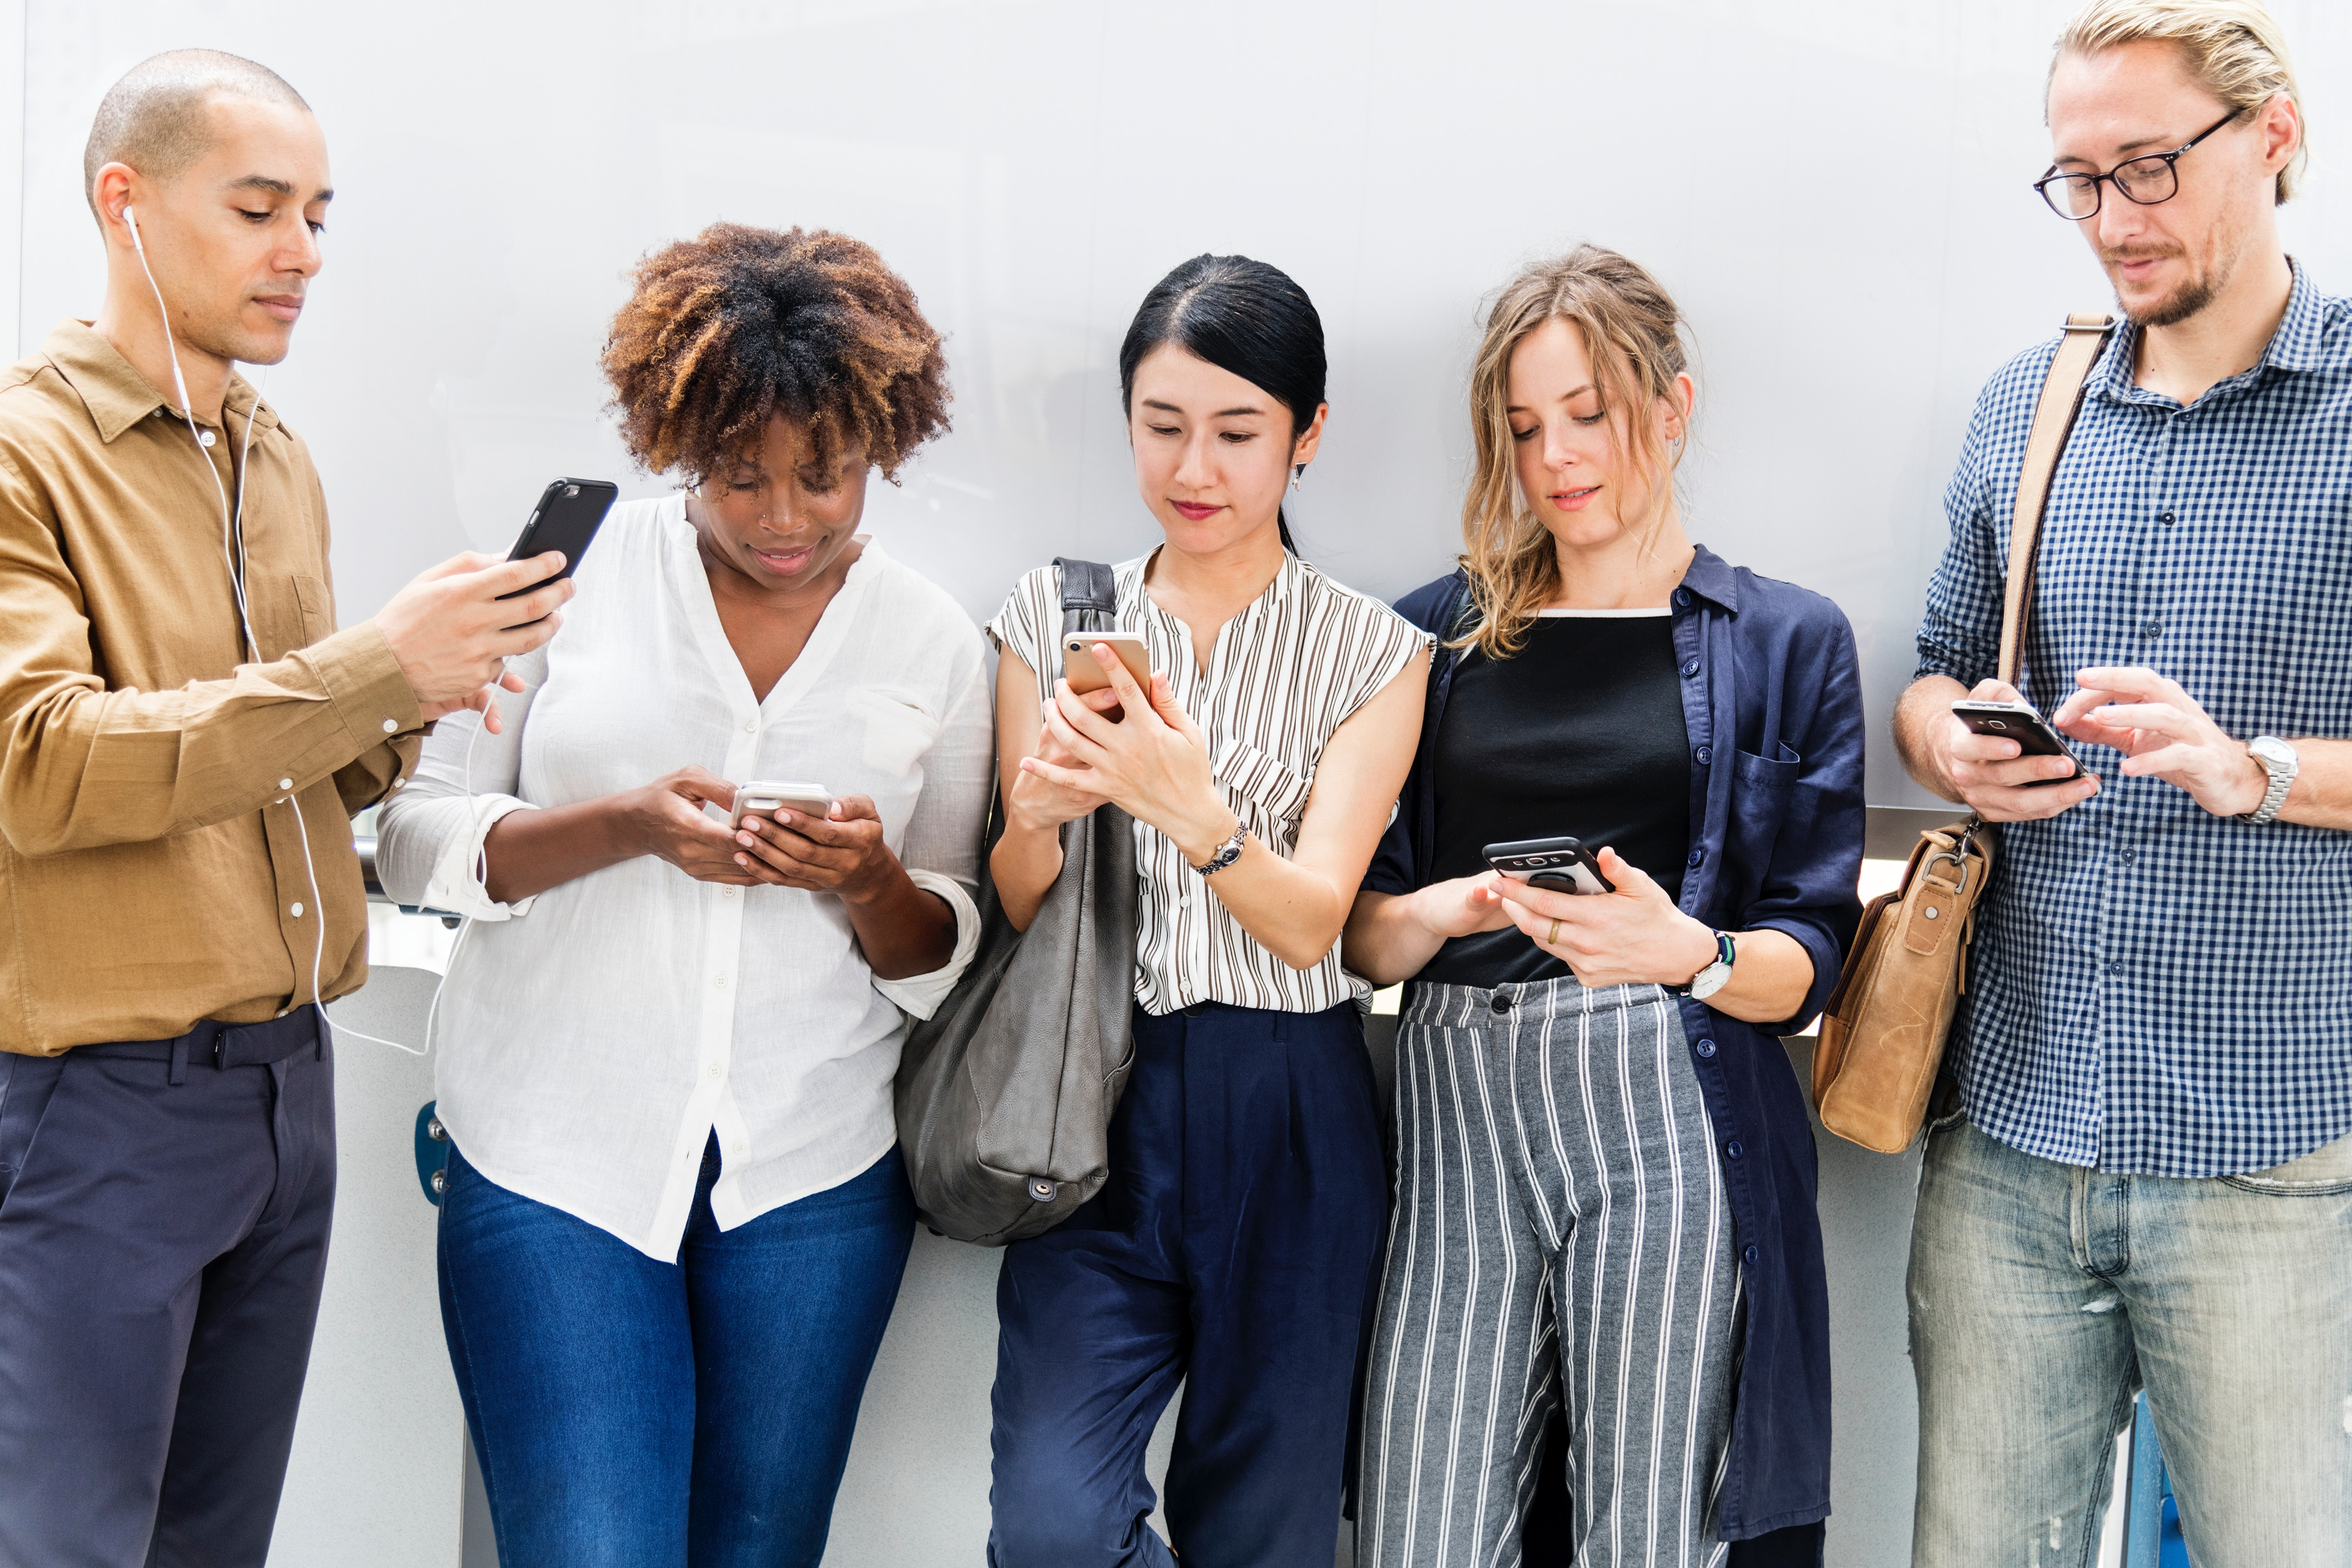 Influencers: Should they be Trusted?